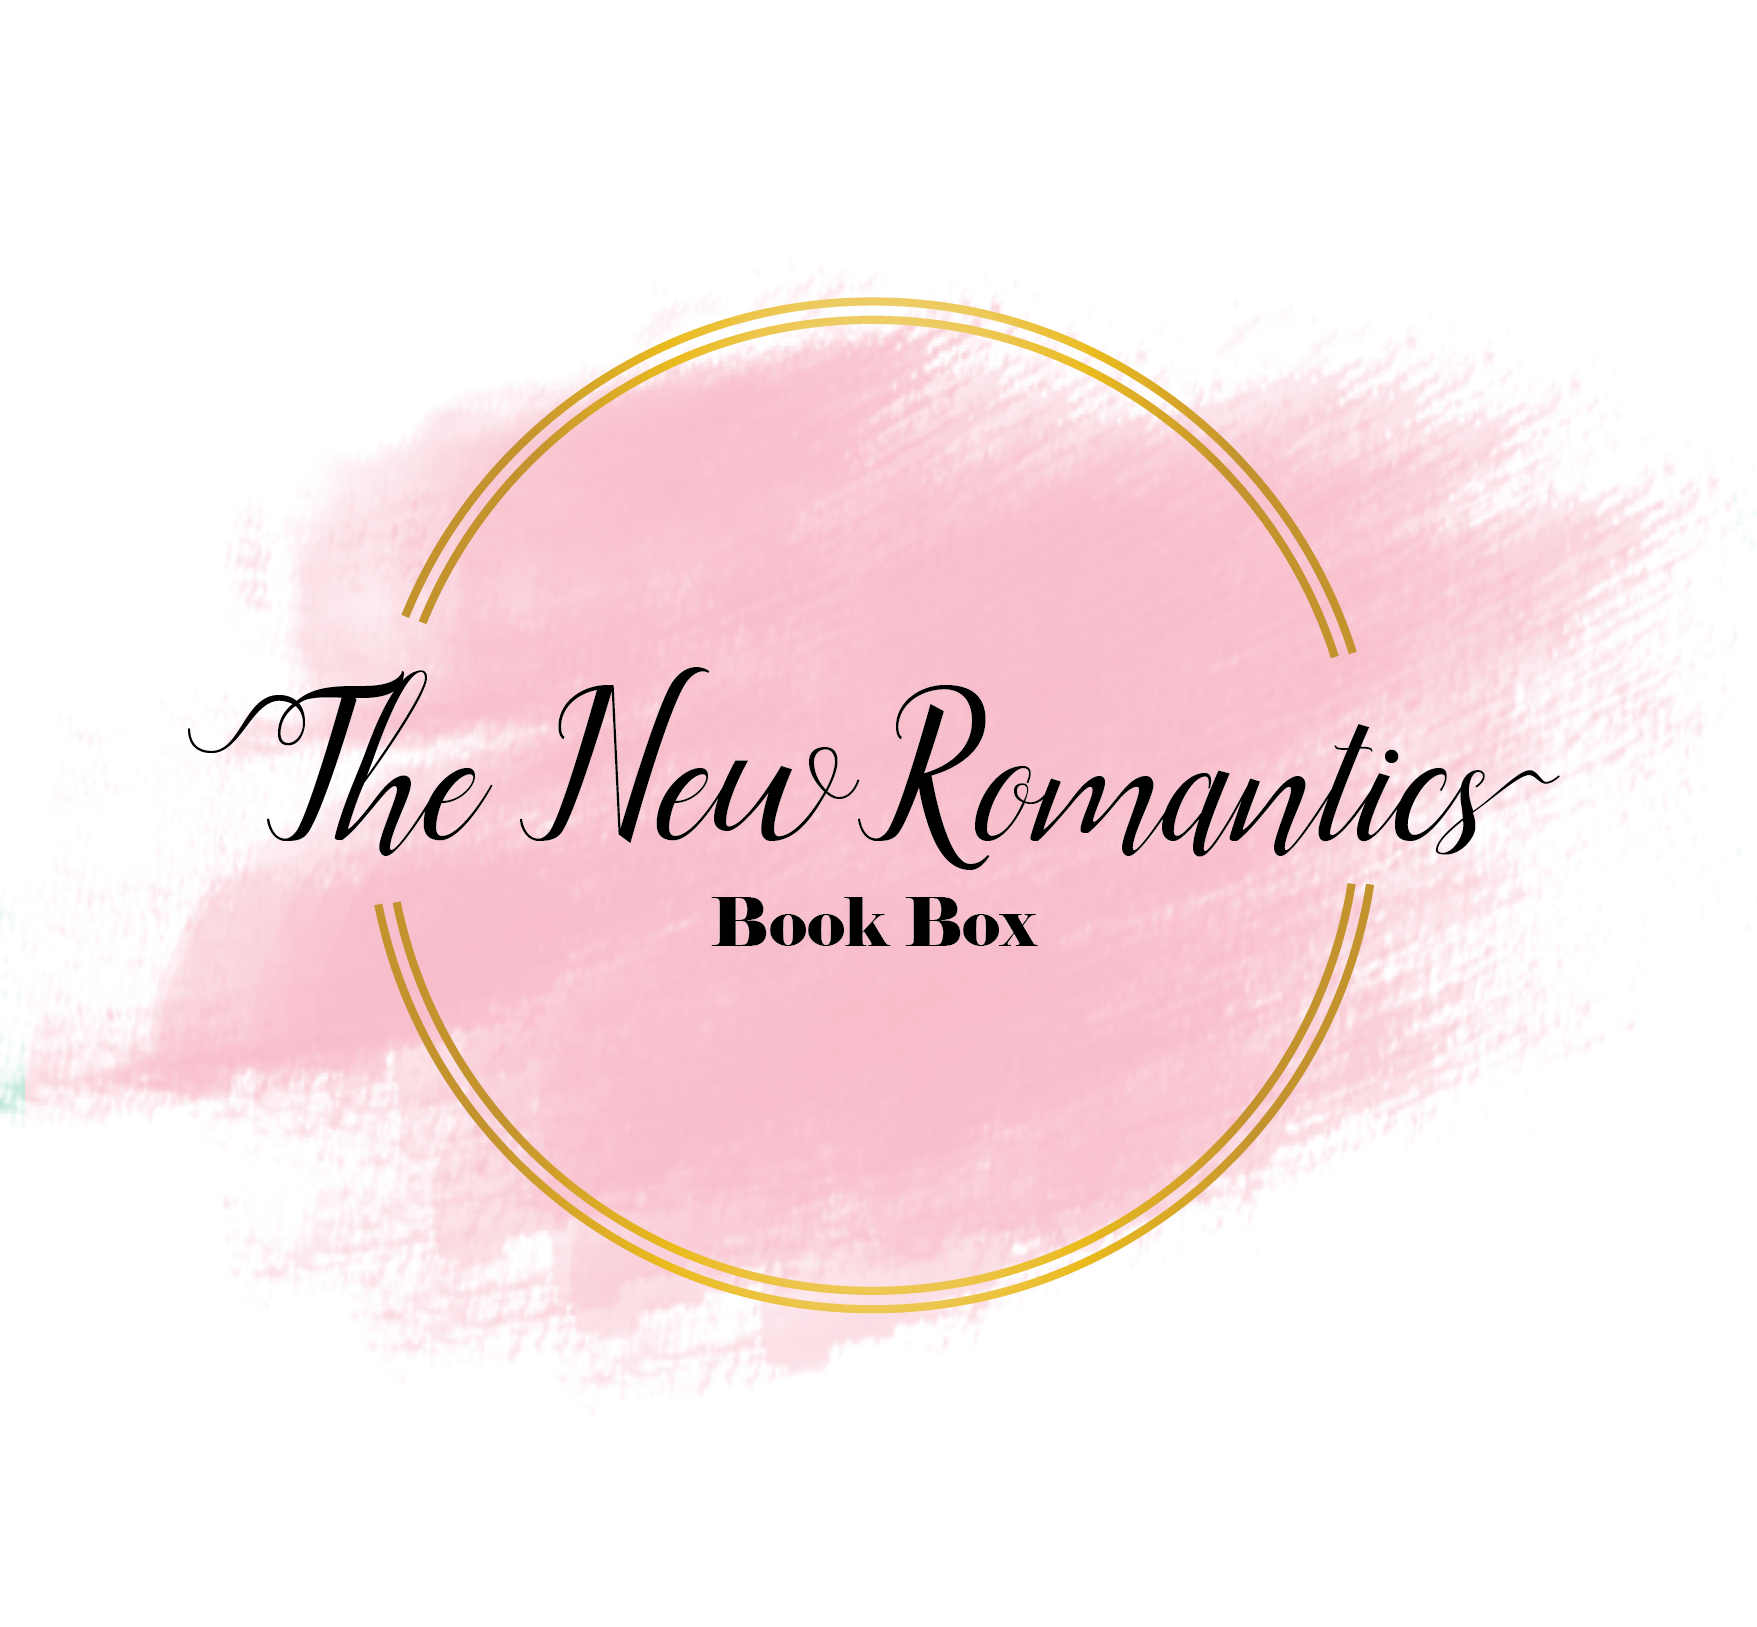 The New Romantics Book Box